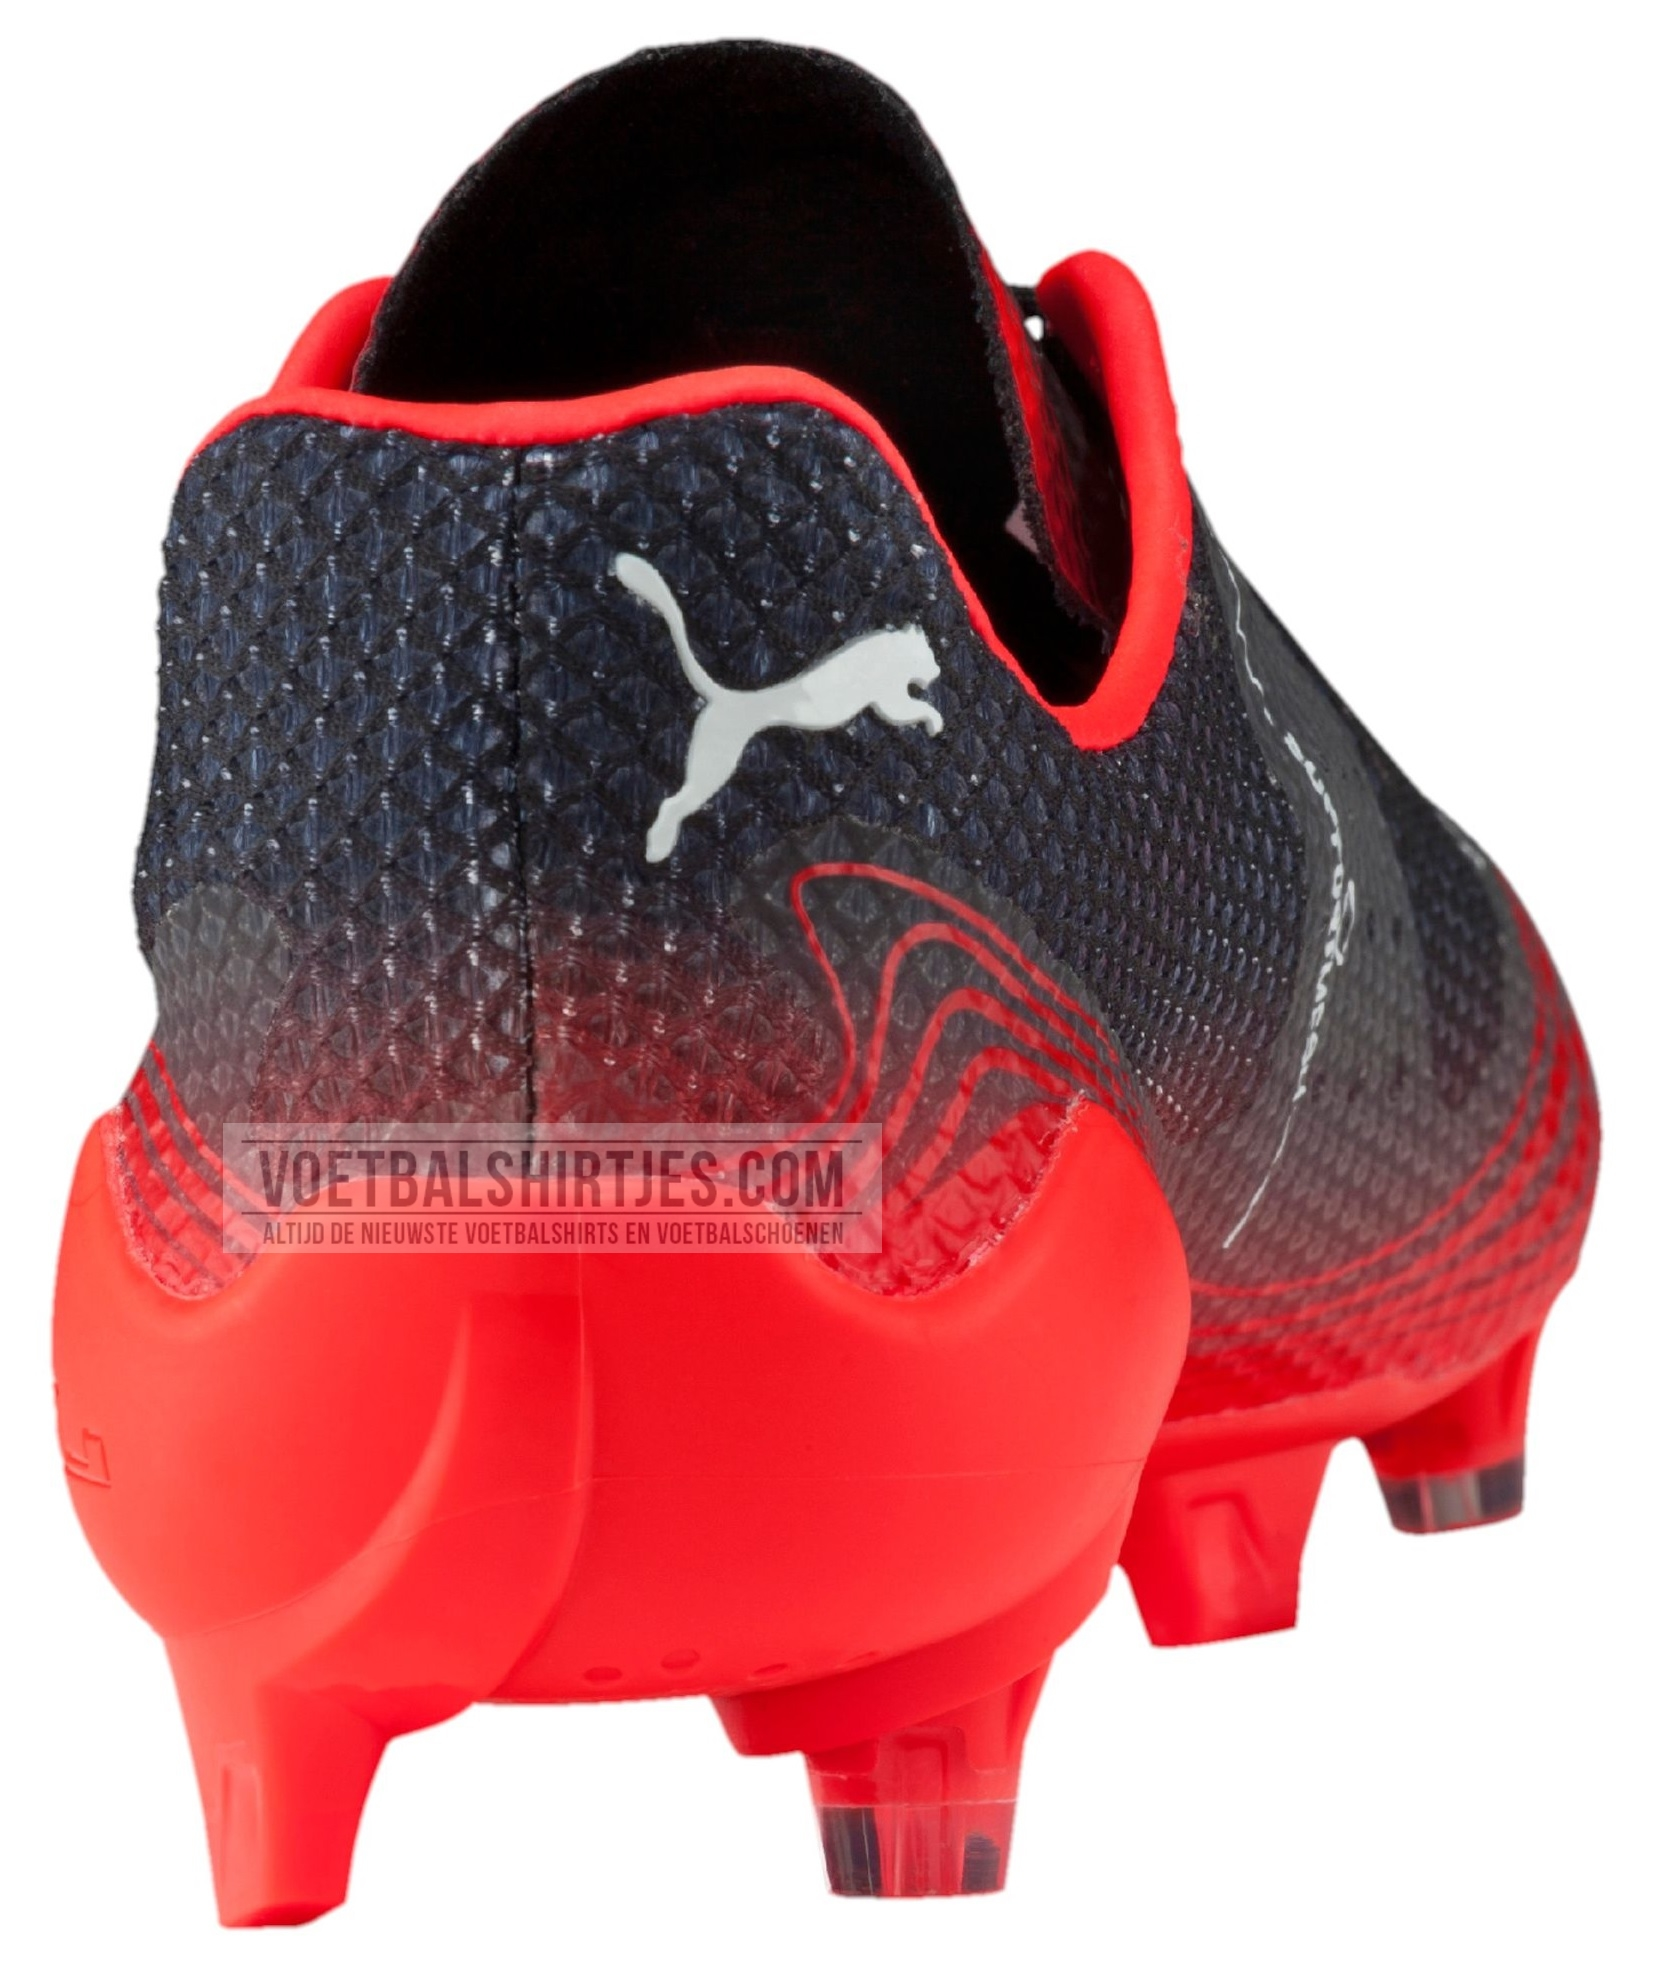 puma_evospeed_fresh_red